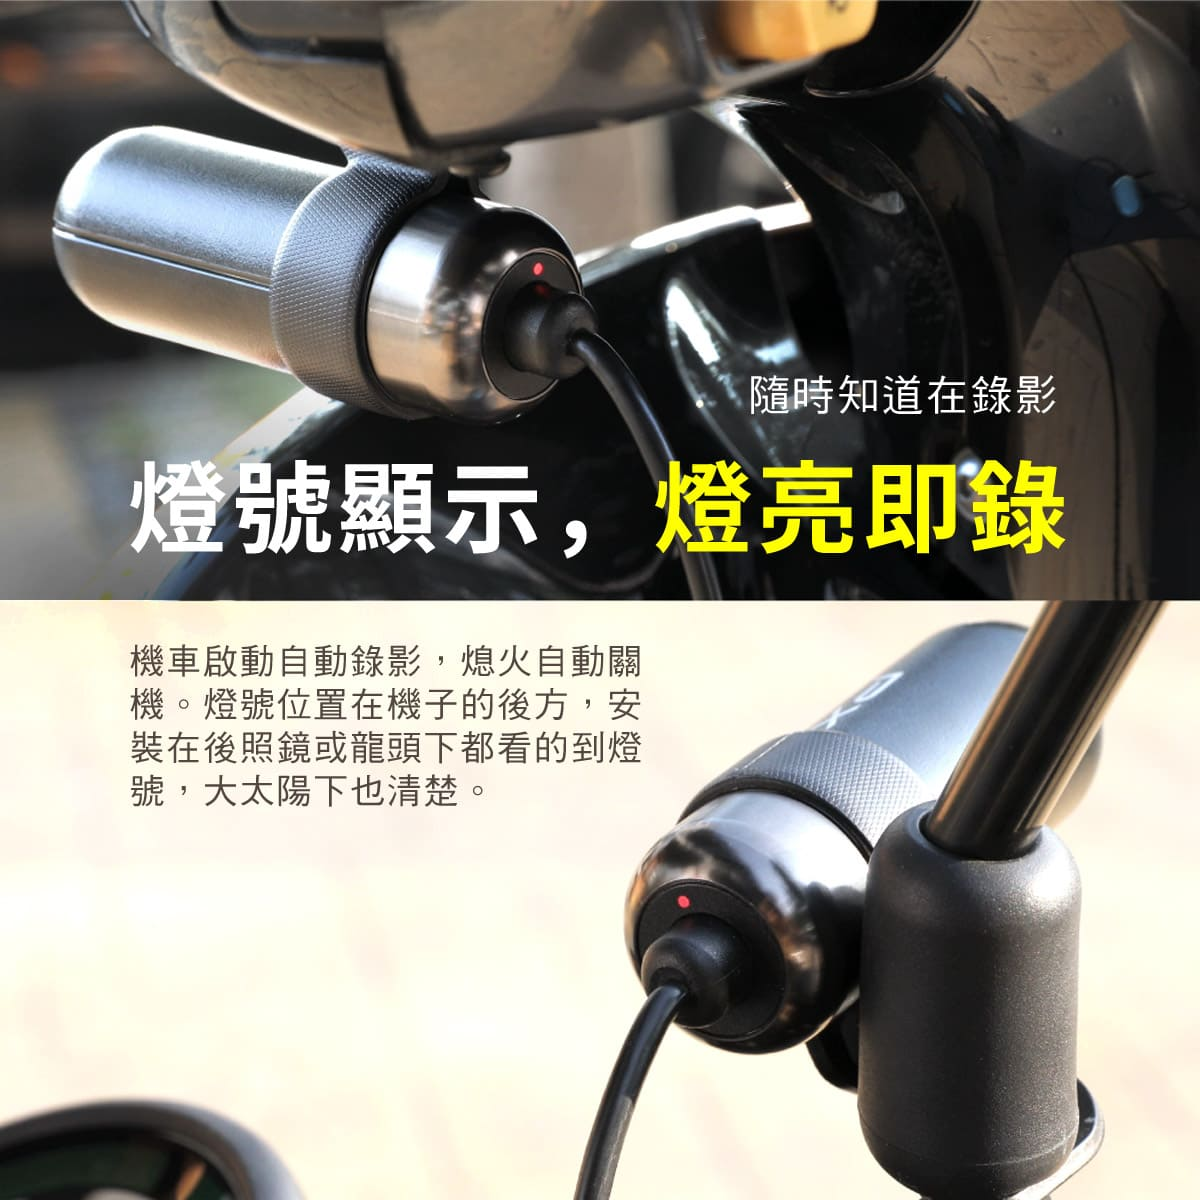 proimages/product/Bike_Cam/B53U_B63U/22.jpg